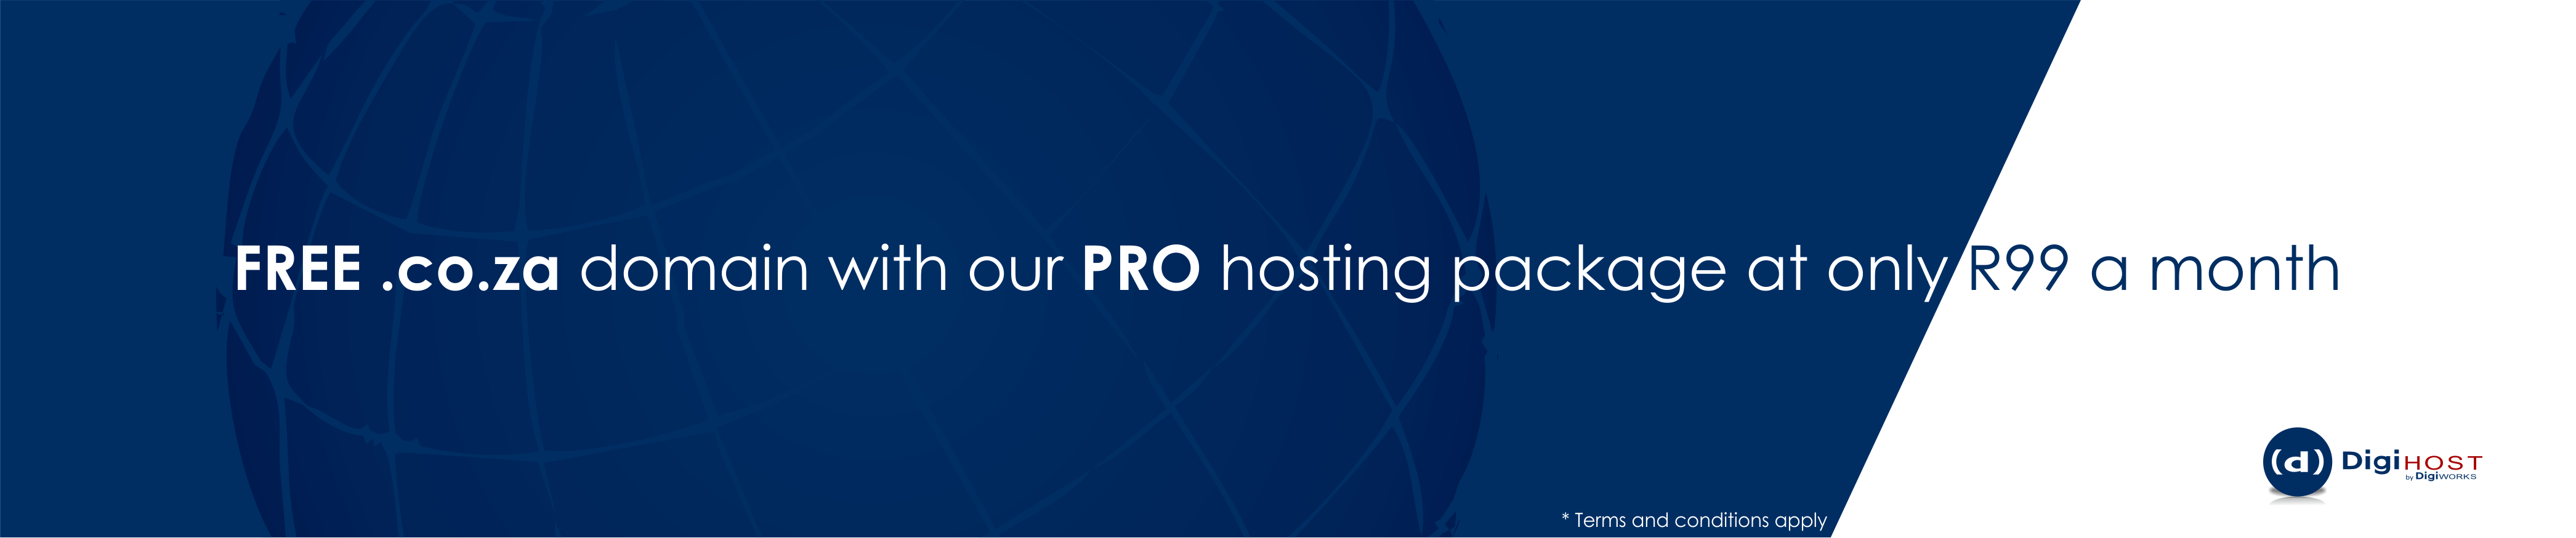 DigiHost free domain with our pro package for R99 a month